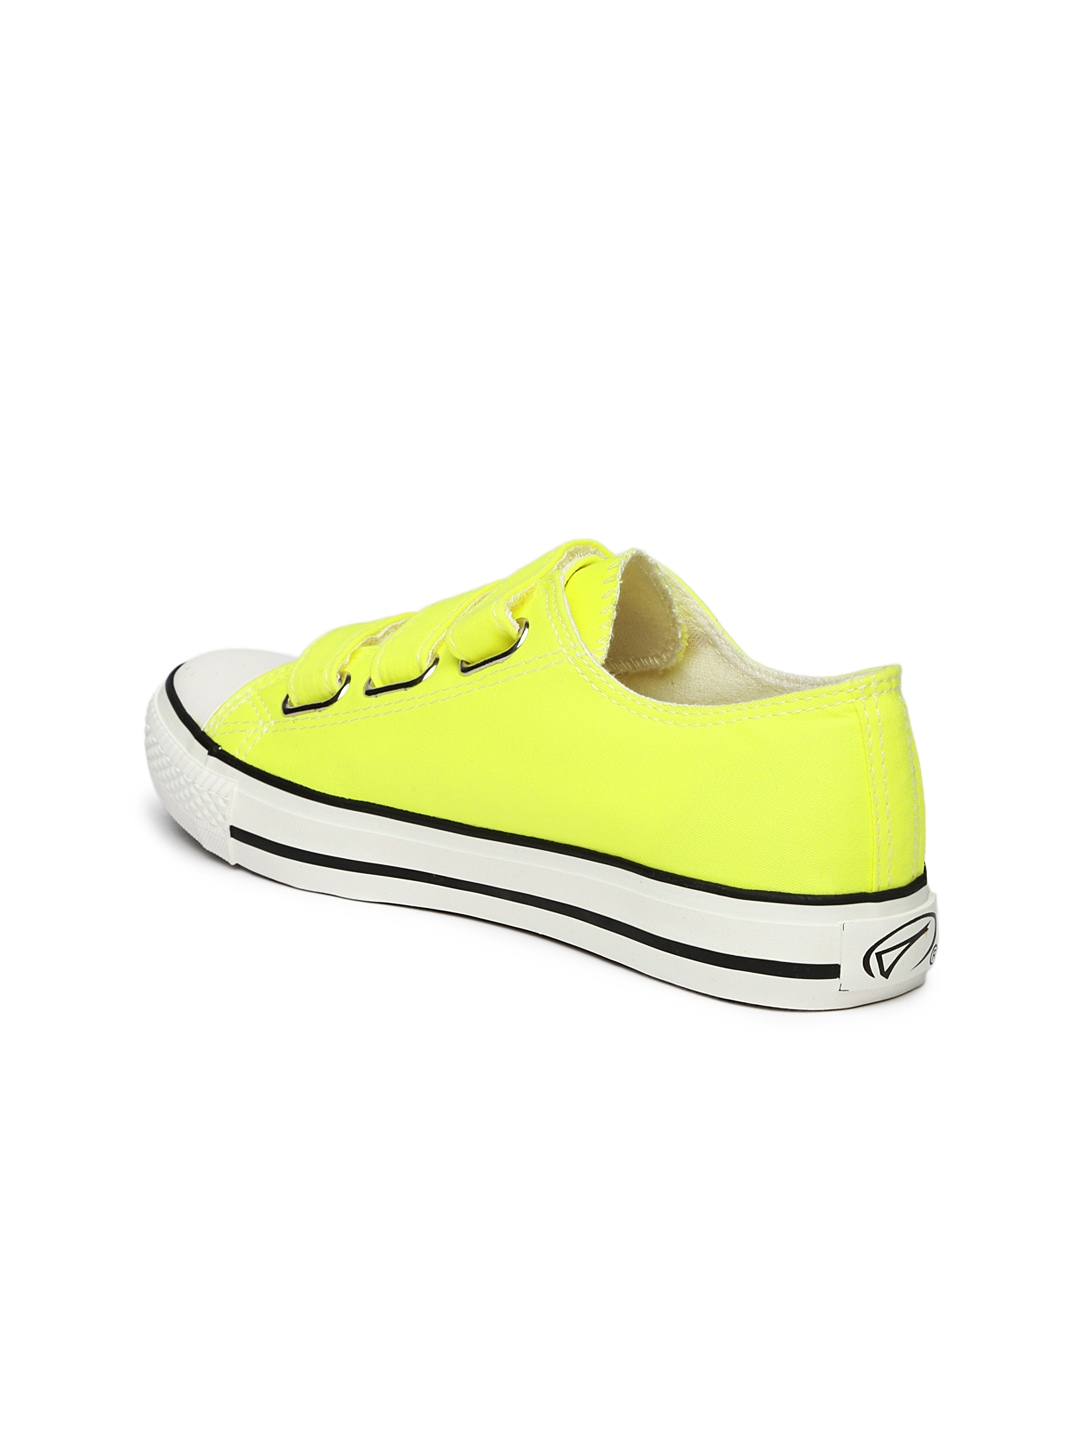 Myntra Boltio Women Neon Yellow Sneakers 875366 | Buy ...